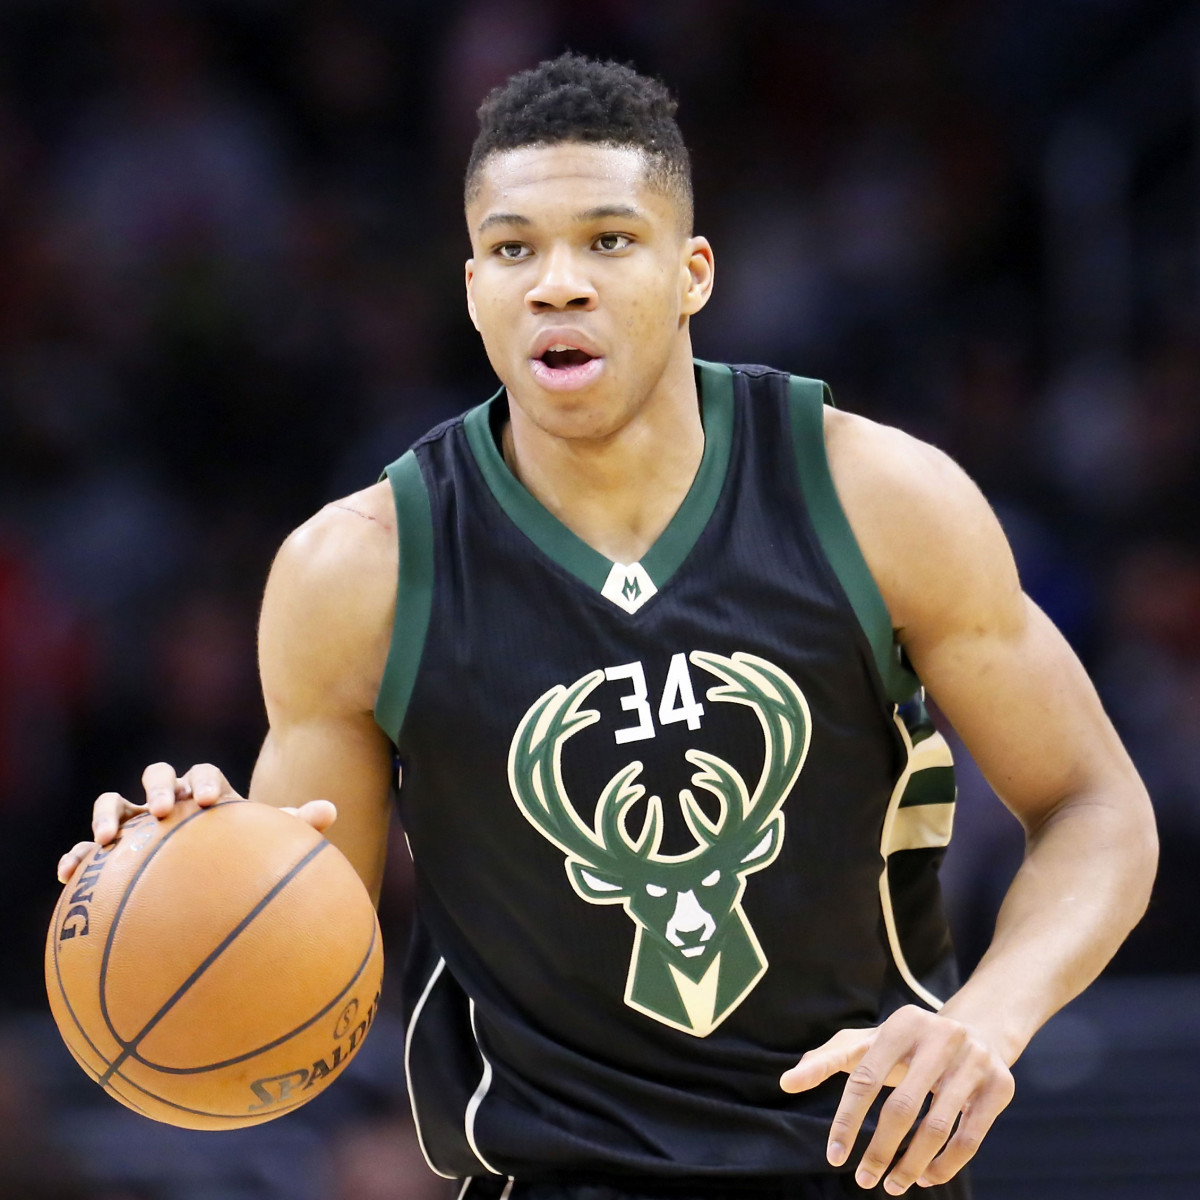 Photo of Giannis Antetokounmpo, 2015-2016 season